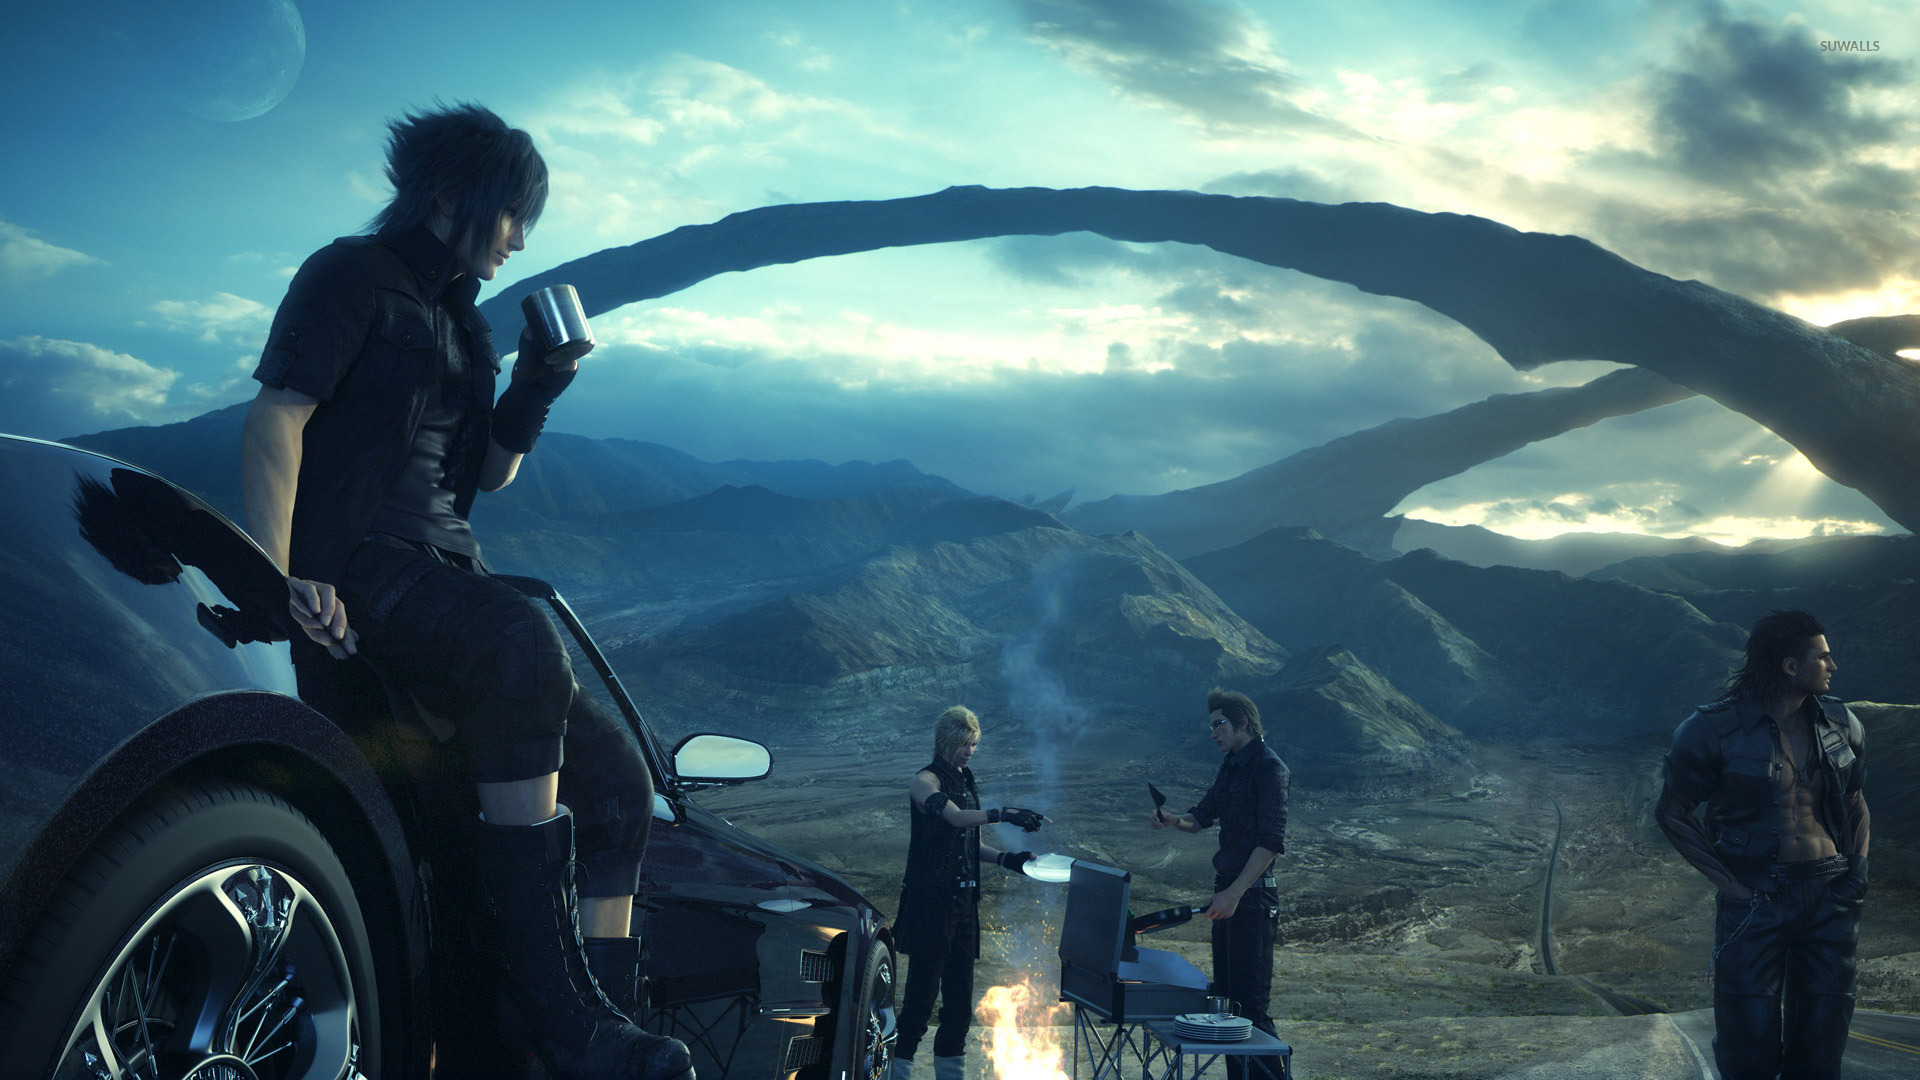 Final fantasy xv wallpapers pictures images - Final fantasy 9 wallpaper 1920x1080 ...